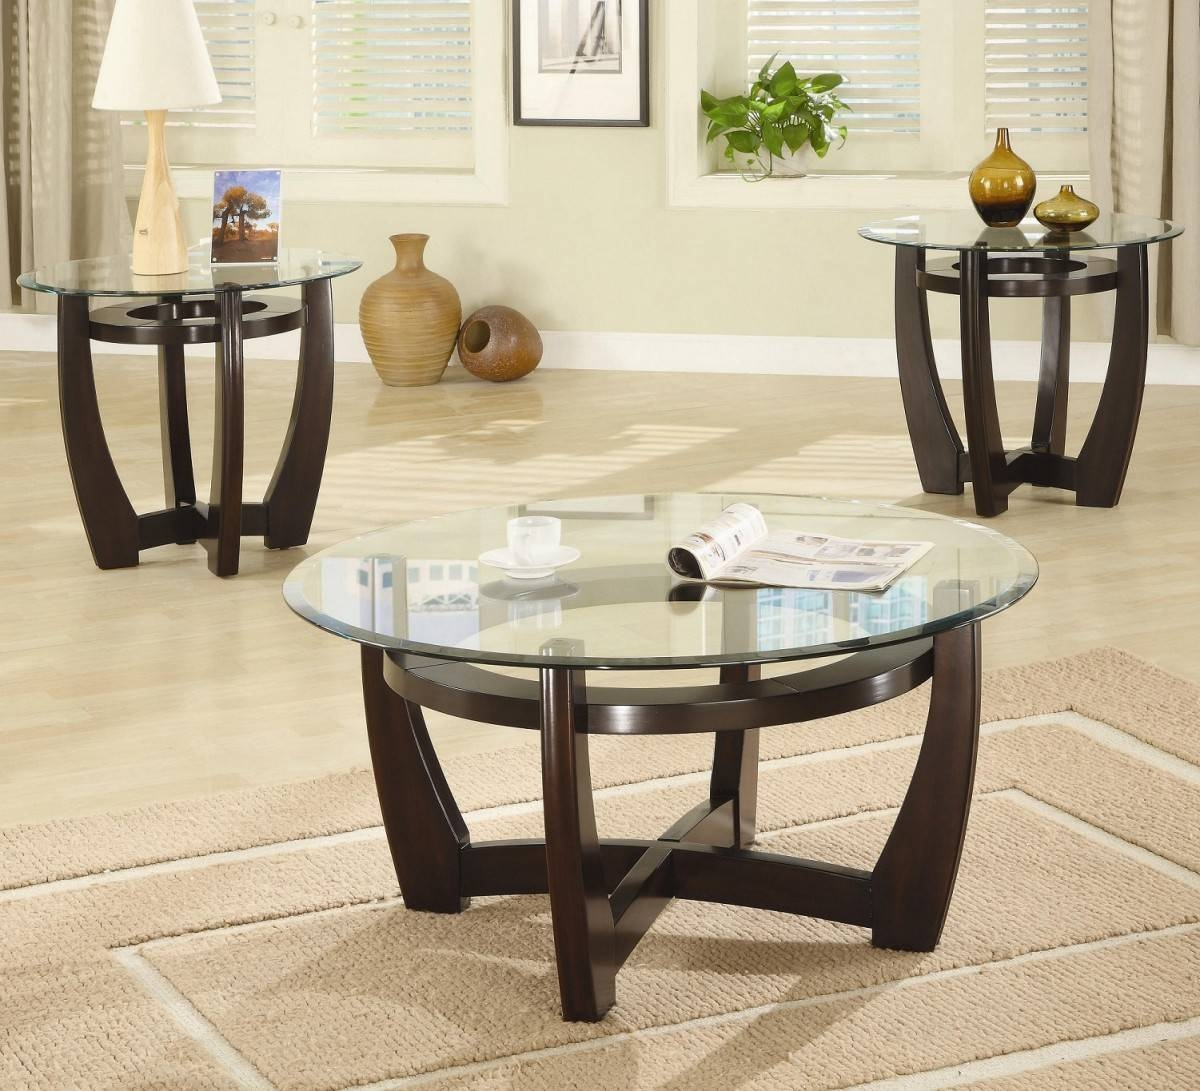 Round Glass Coffee Table Sets Ideas pertaining to Round Glass Coffee Tables (Image 16 of 30)